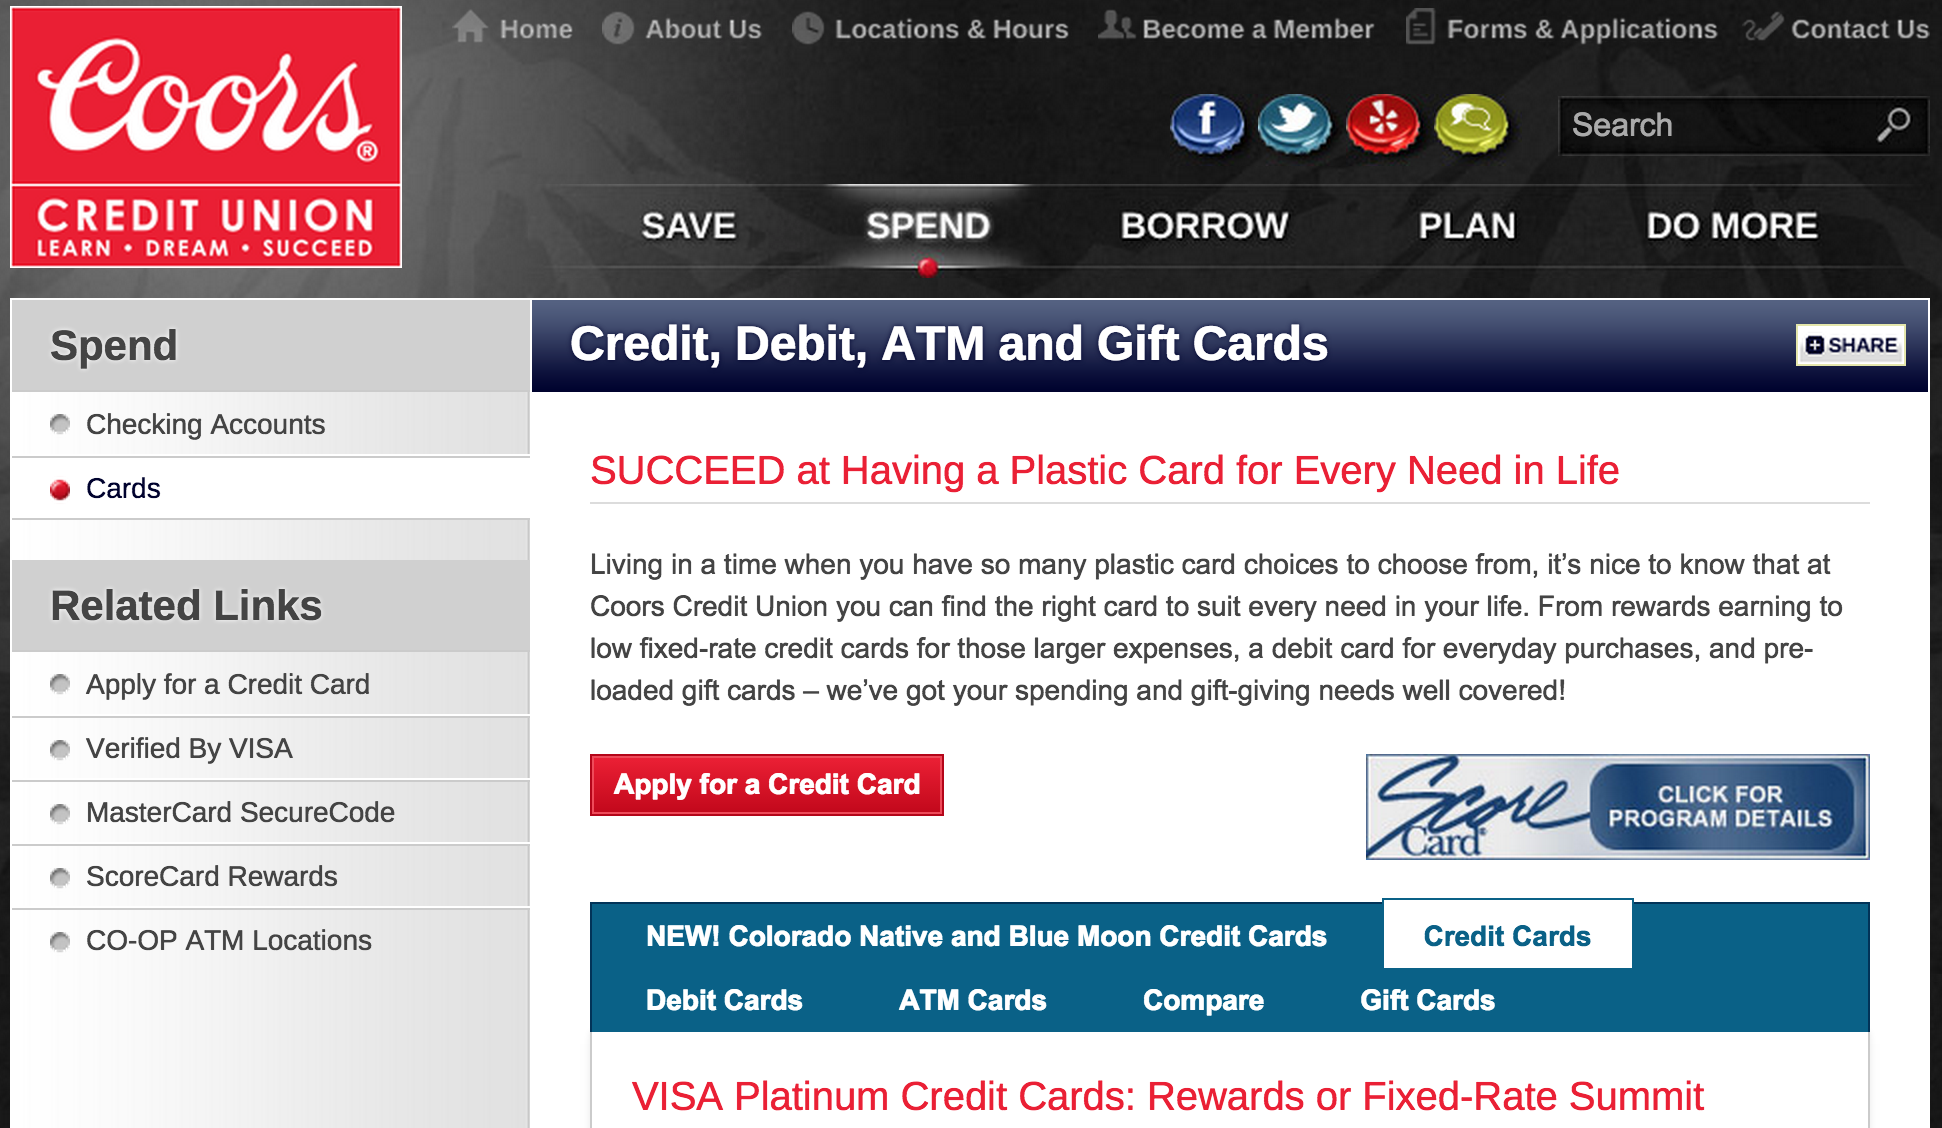 How to Apply for the Coors Credit Union Visa Credit Cards